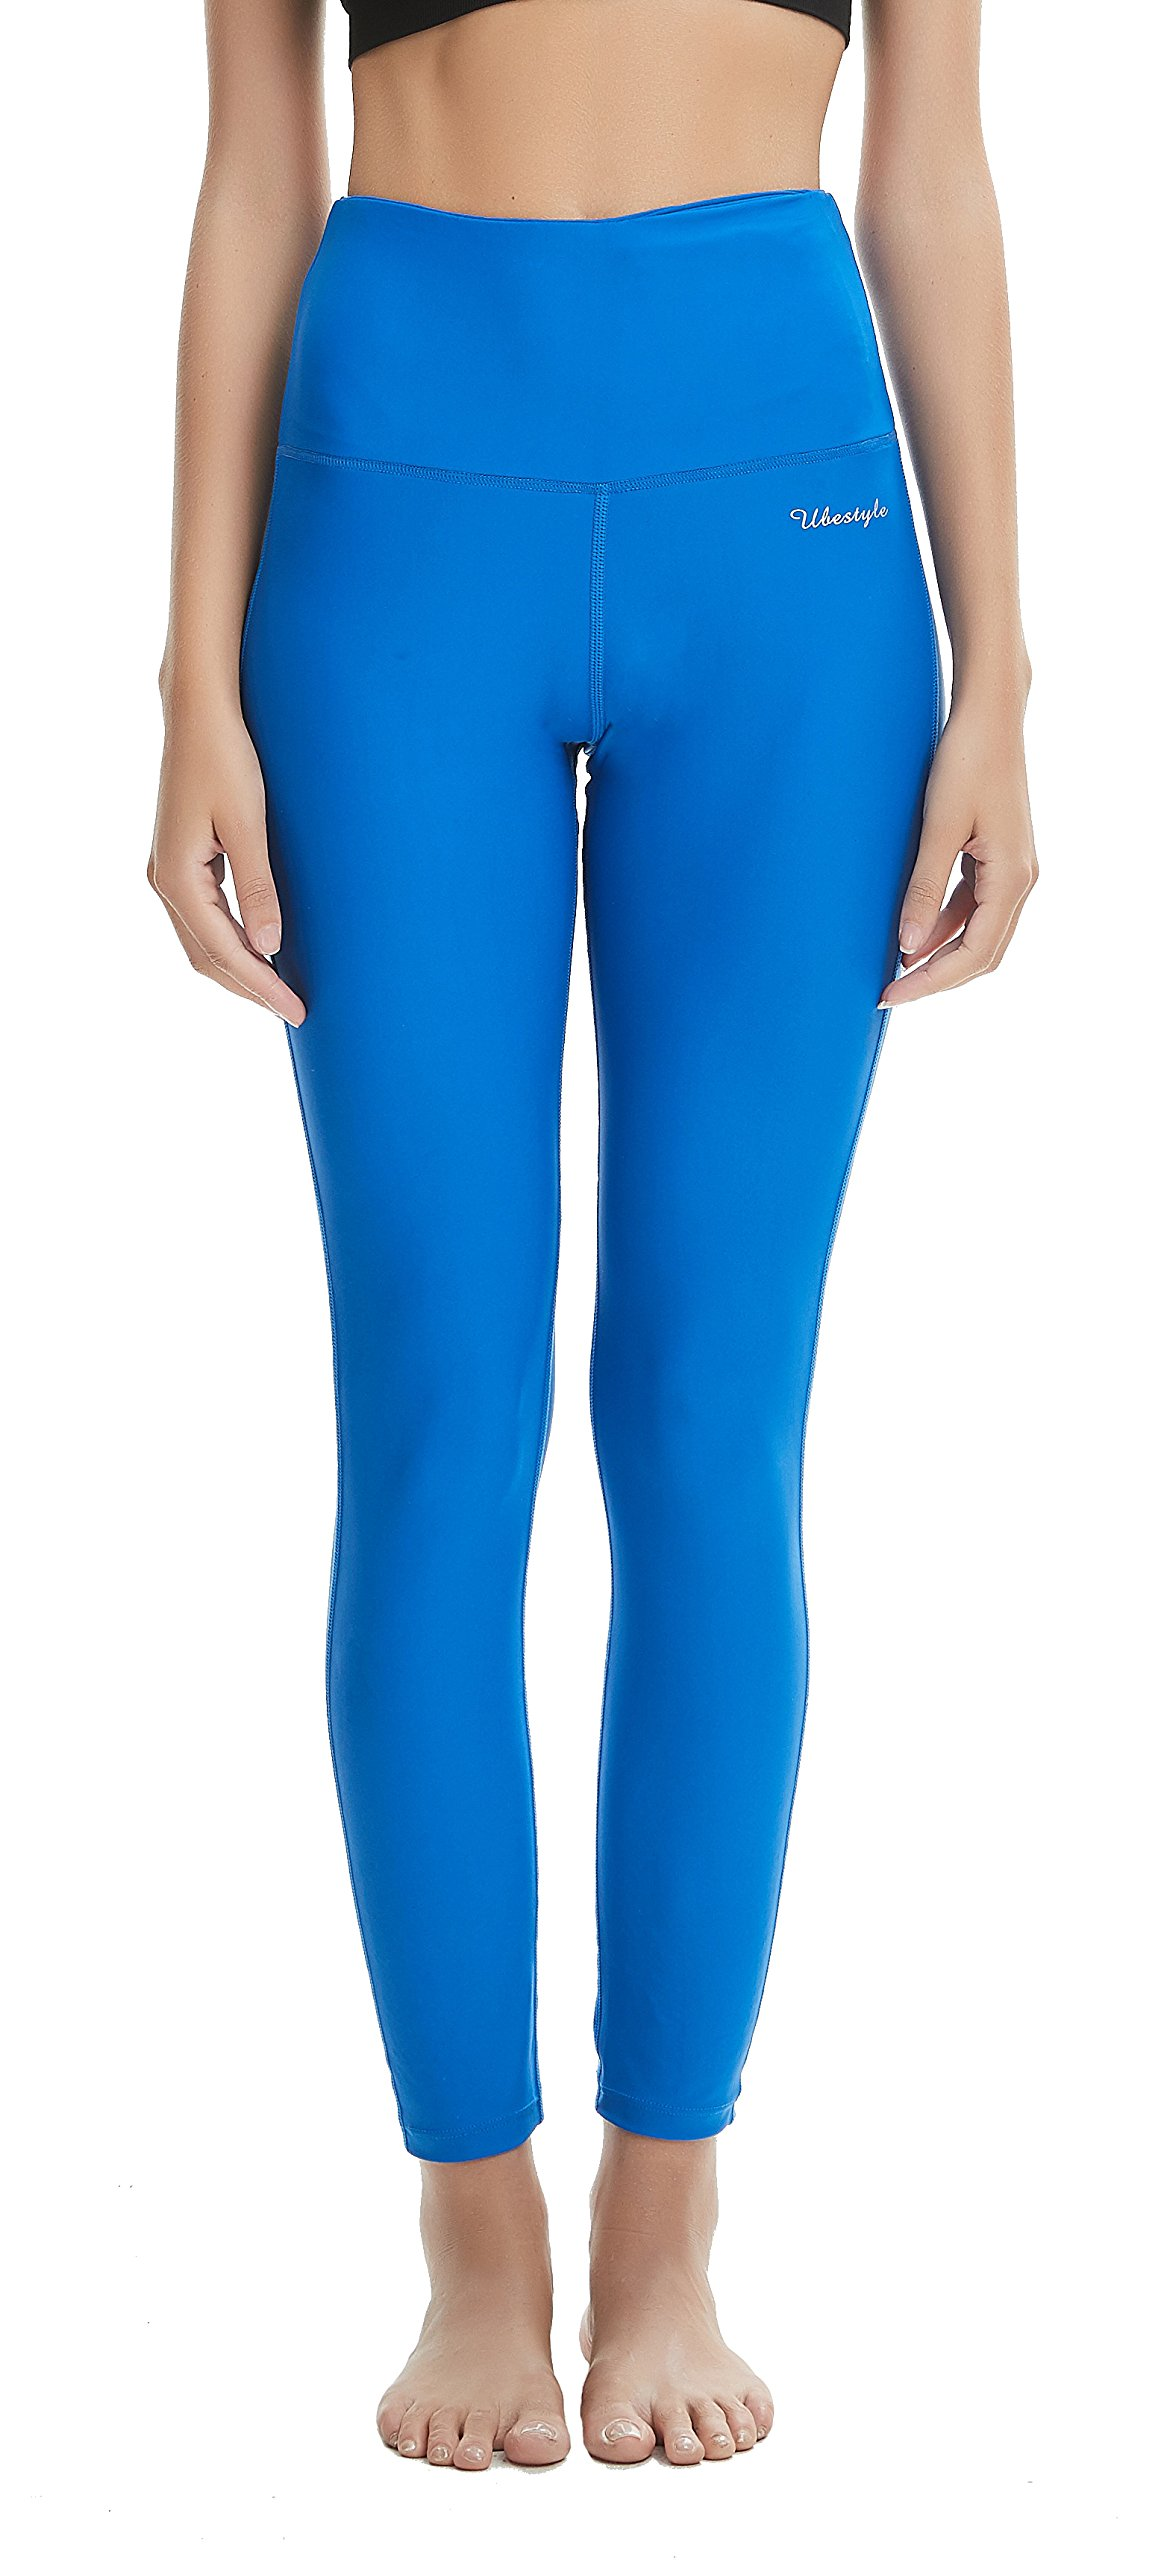 Ubestyle UPF 50+ High Waist Women's Leggings Swimming Tights Sun Protective (Royal Blue, XL)